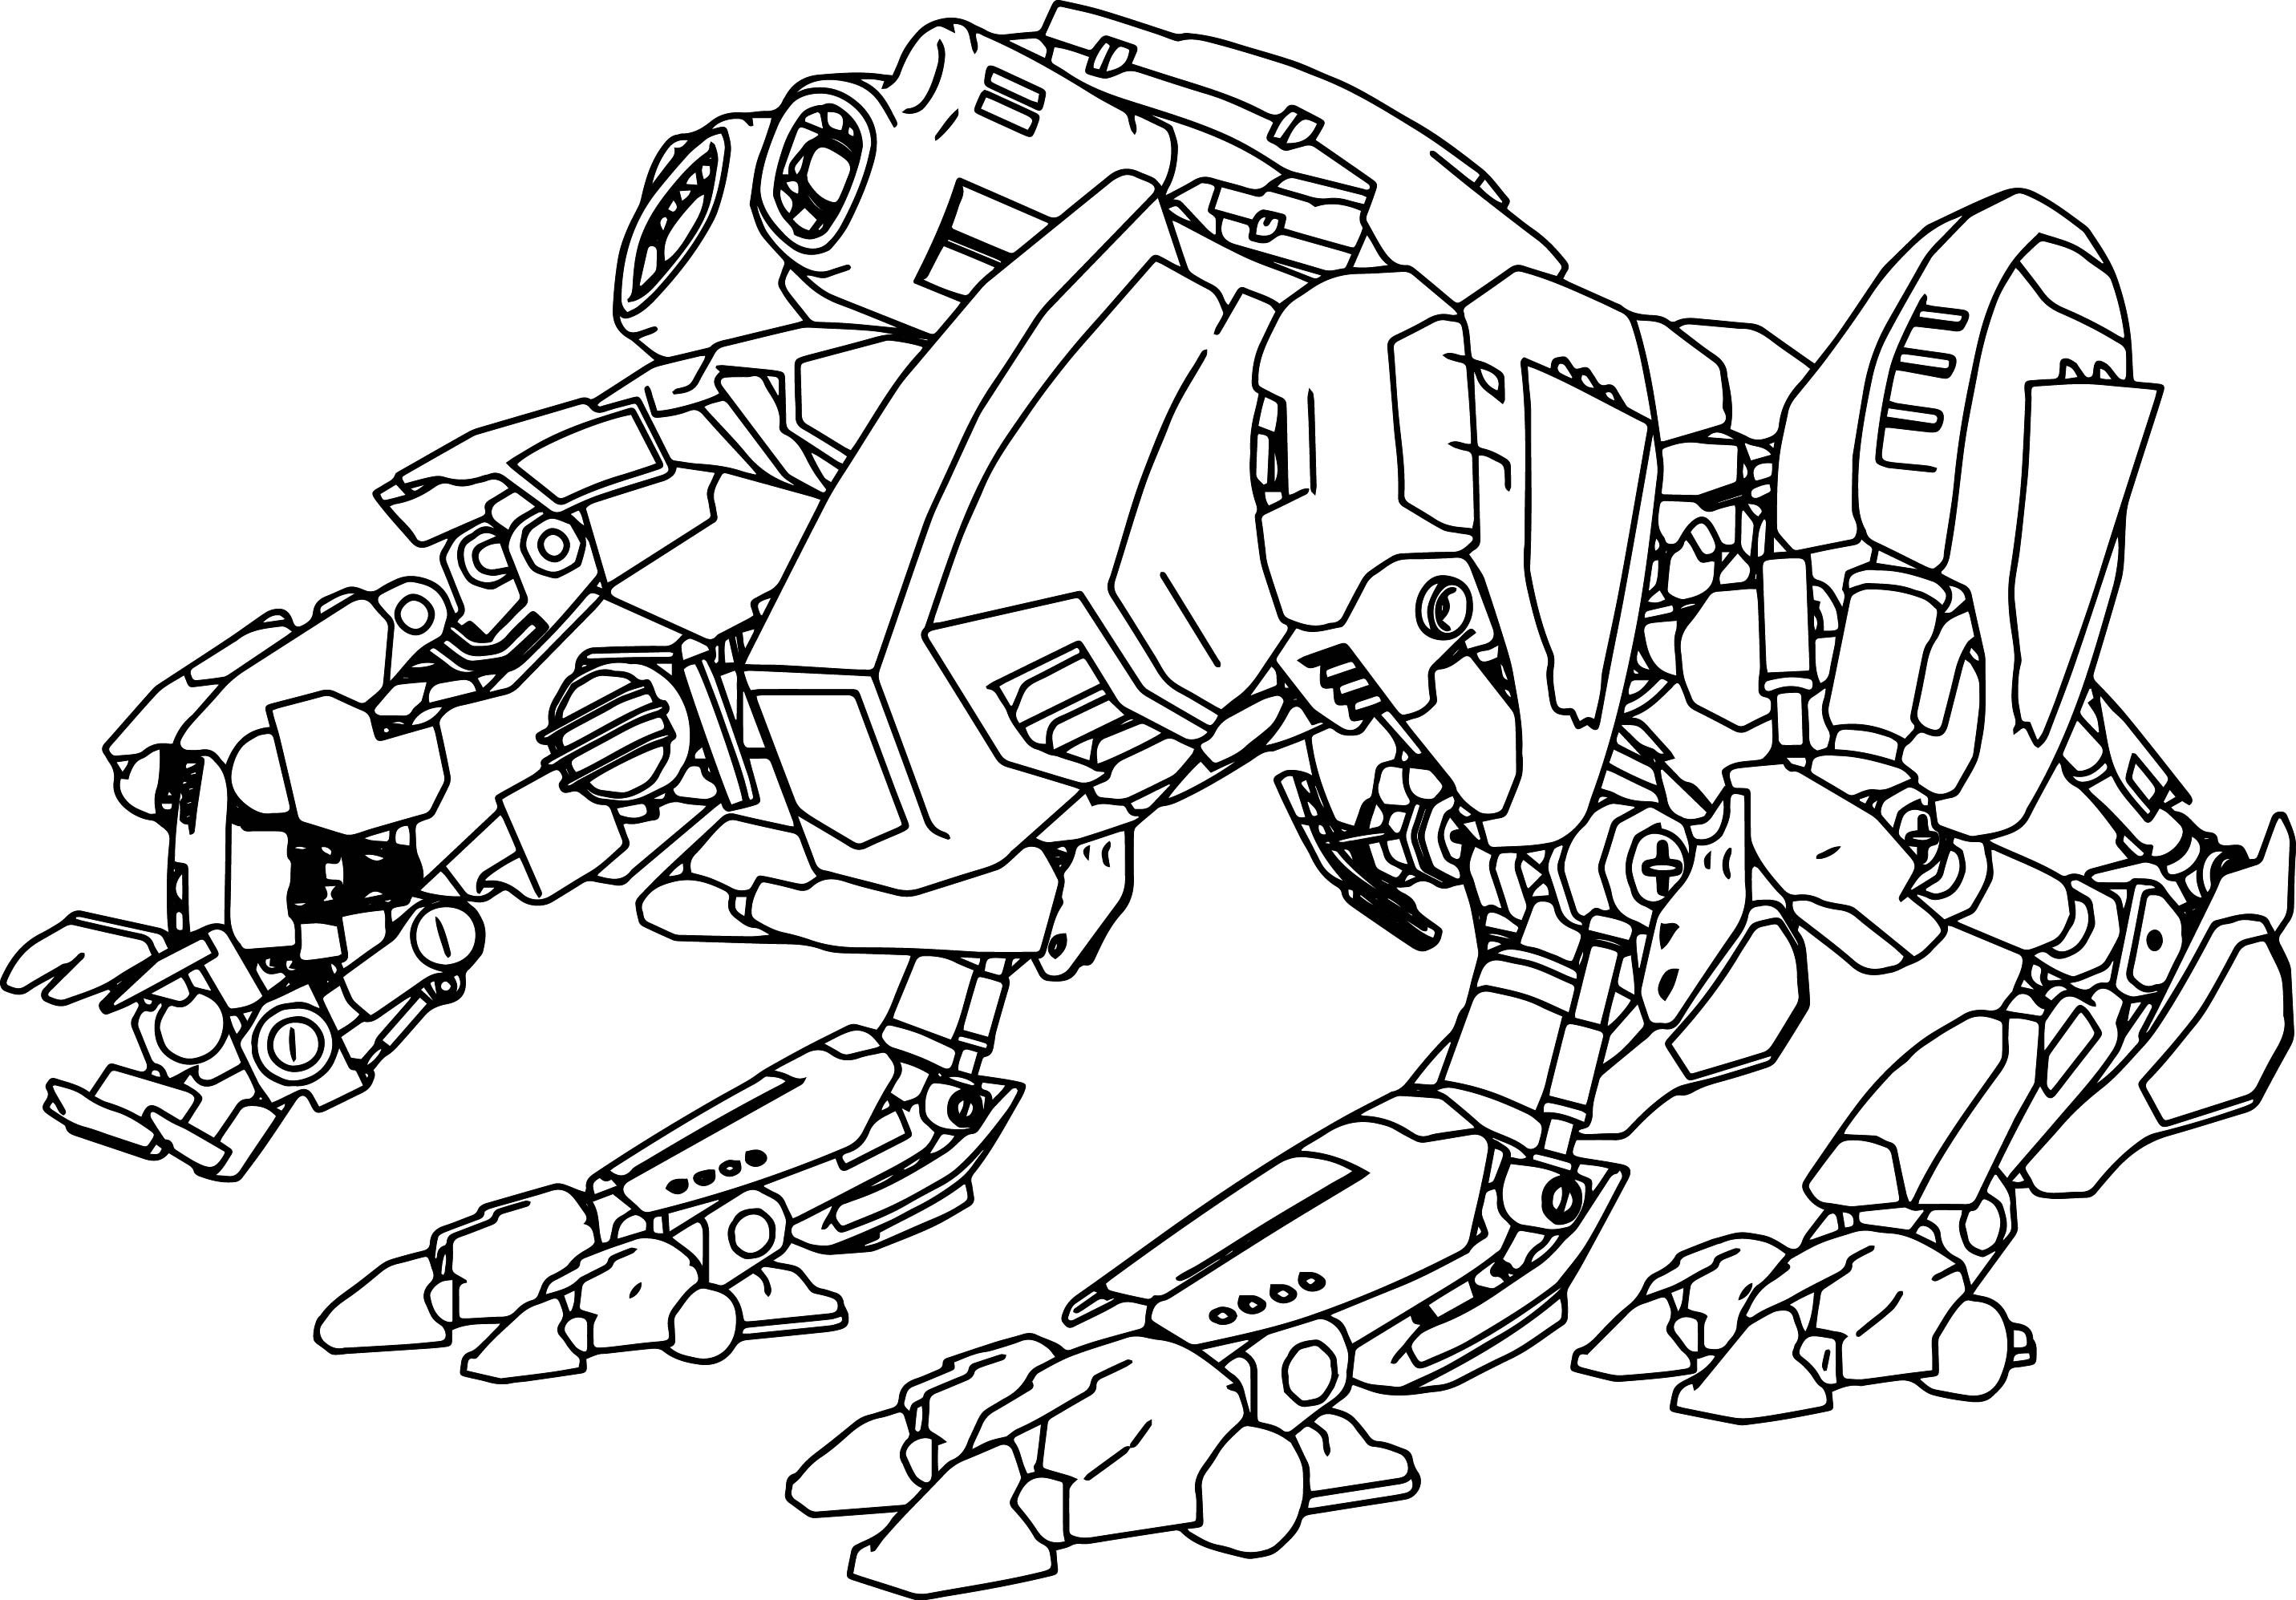 Ausmalbilder Glücksbärchis Genial Coloring Pages Robot Dinosaur Coloring Pages Bild